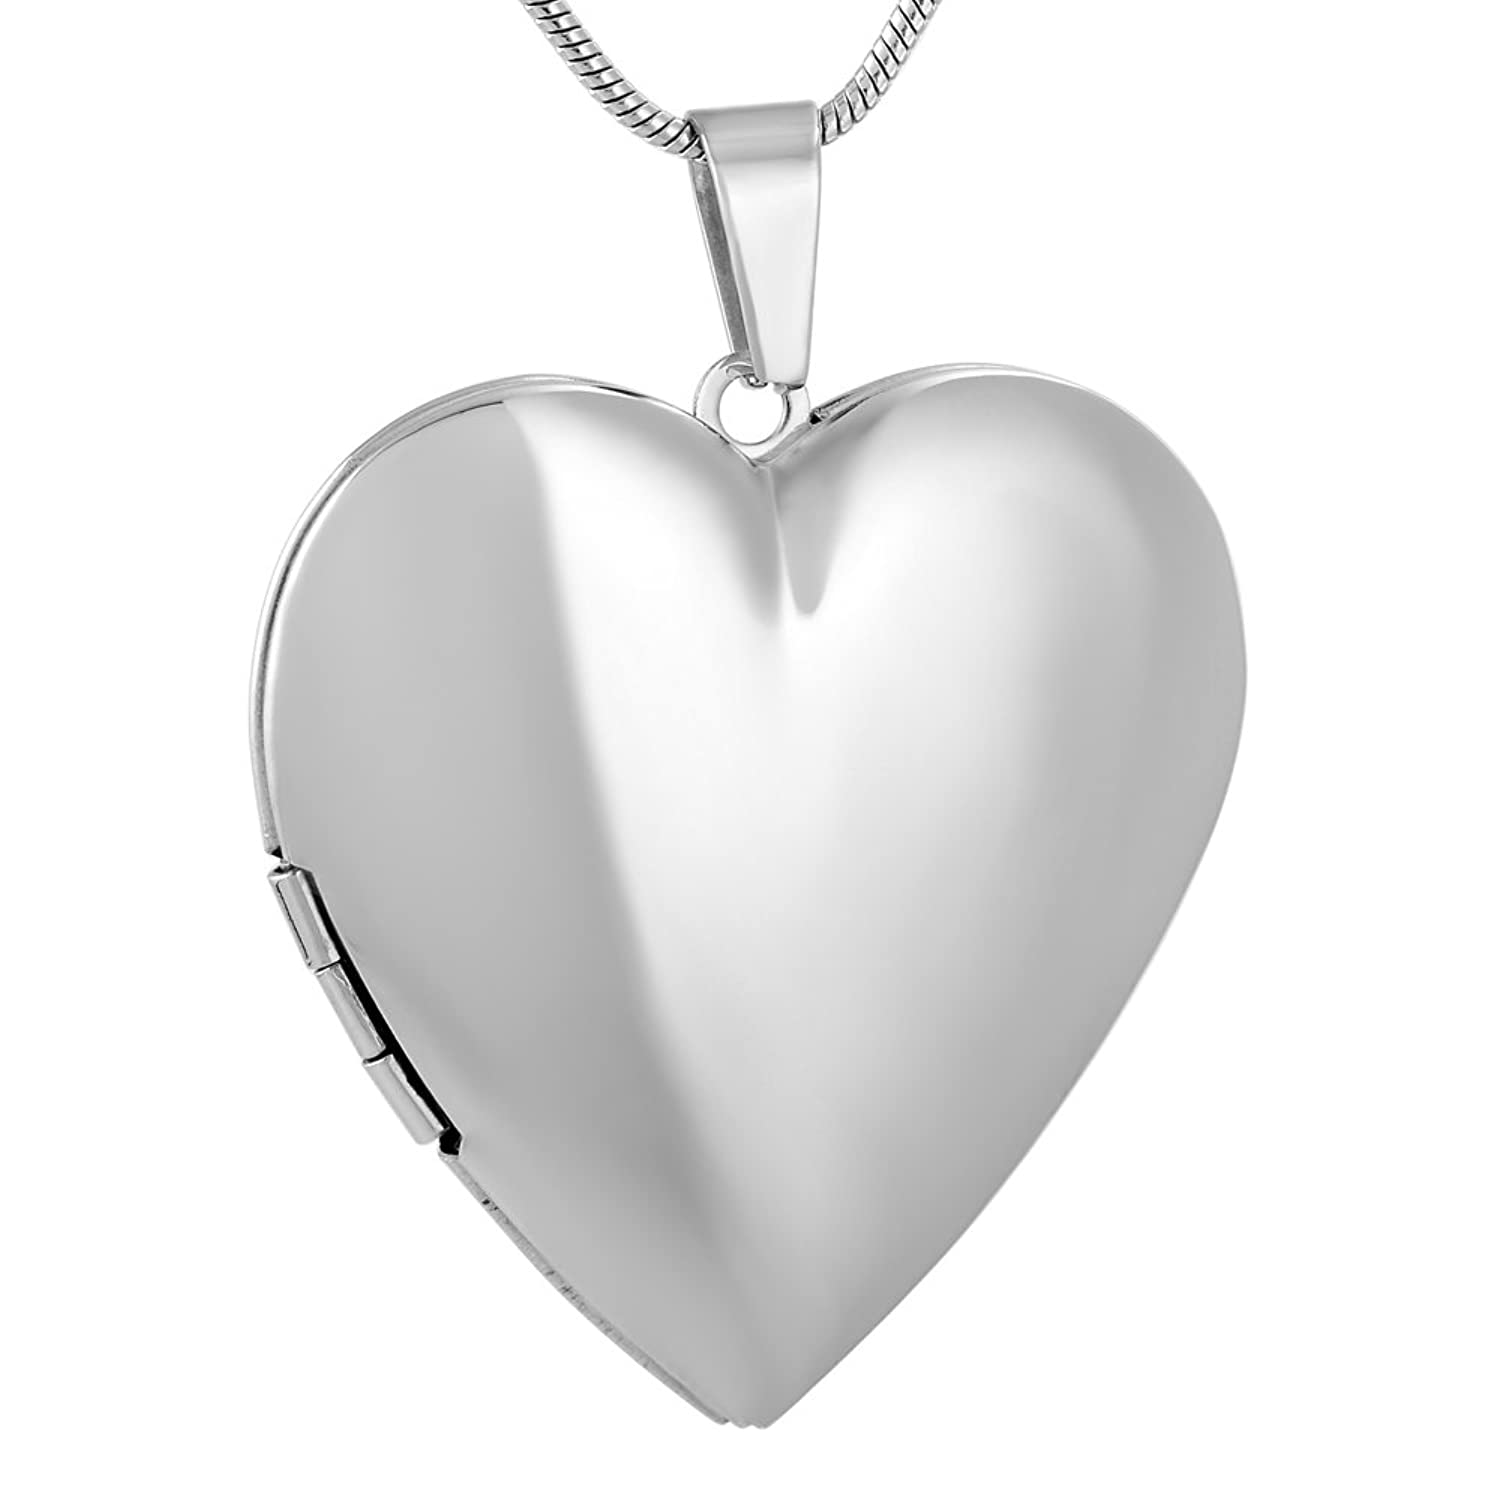 only india men in prices locket product plated thumb for on at shaped heart photo dzinetrendz silver buy women jewellery front mirror and low finish pendant openable